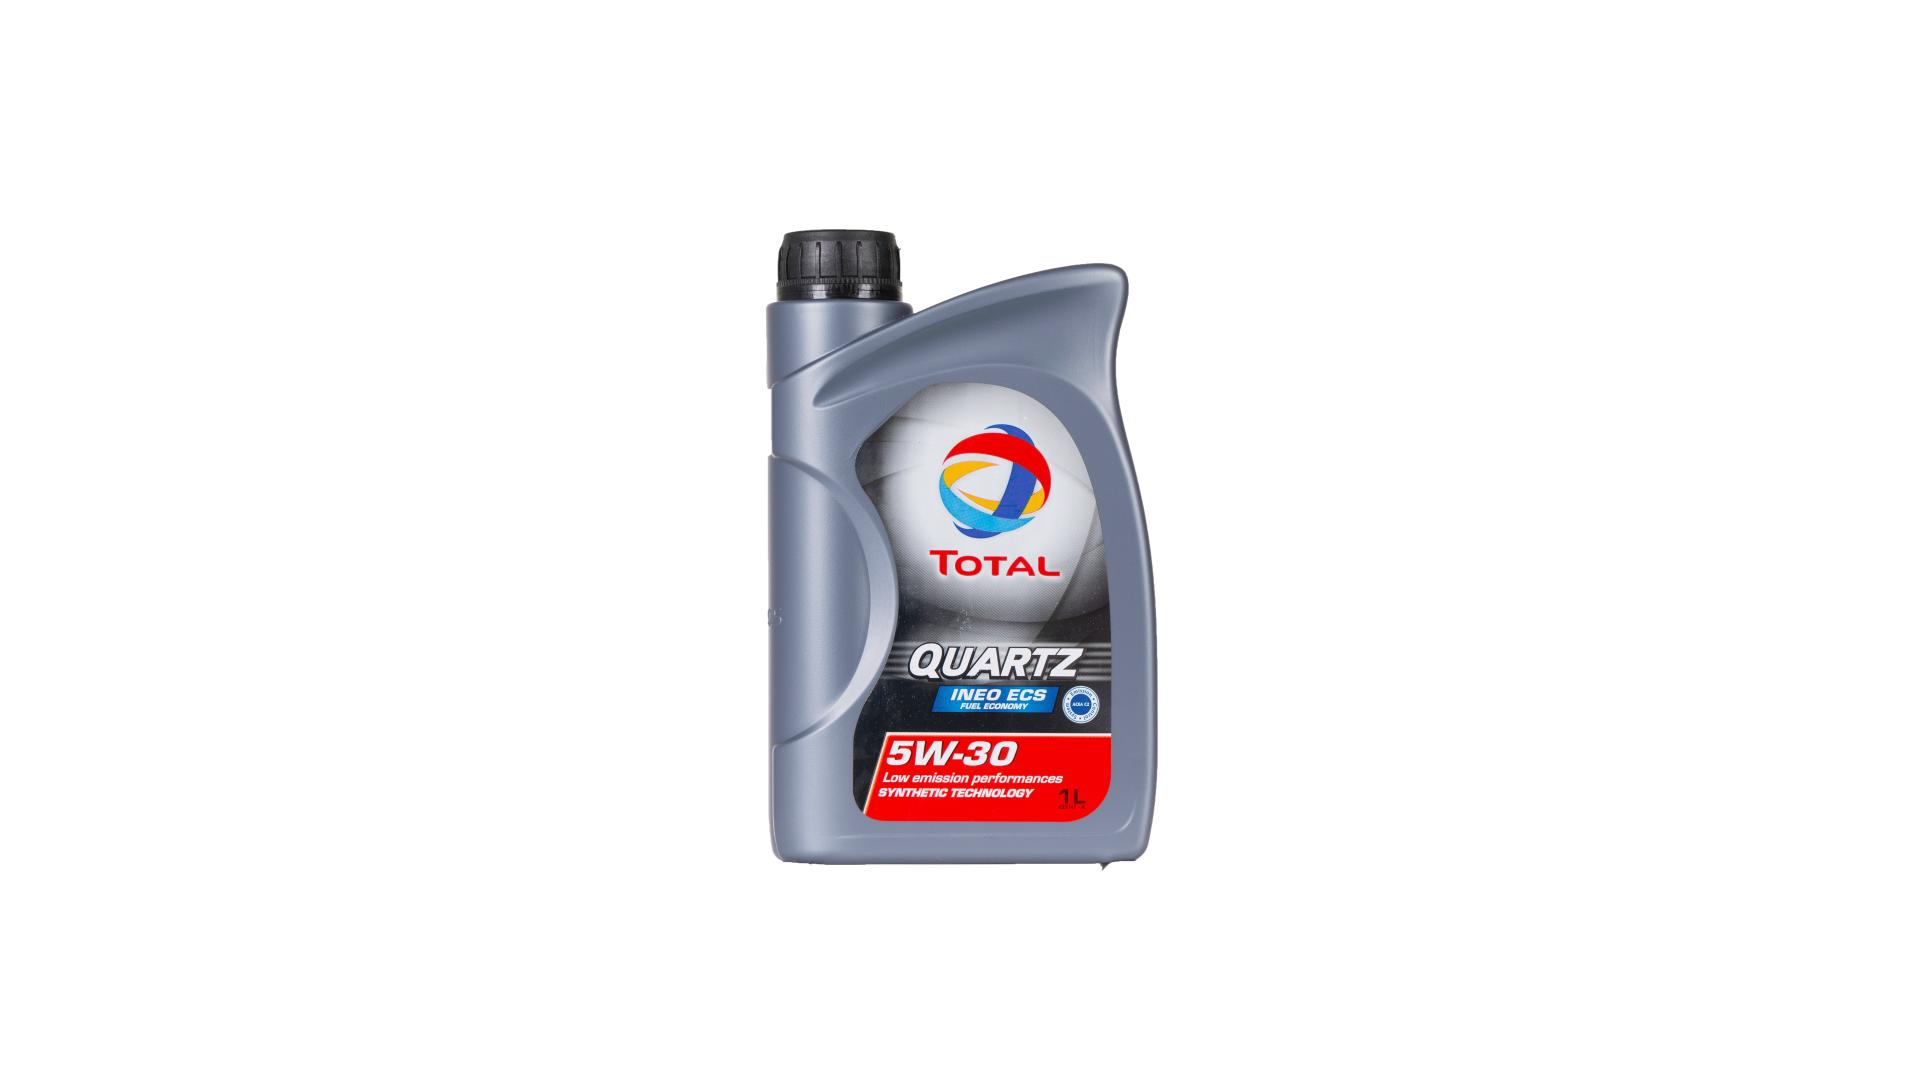 Total 5w-30 Quartz Ineo Ecs 1L (166252)